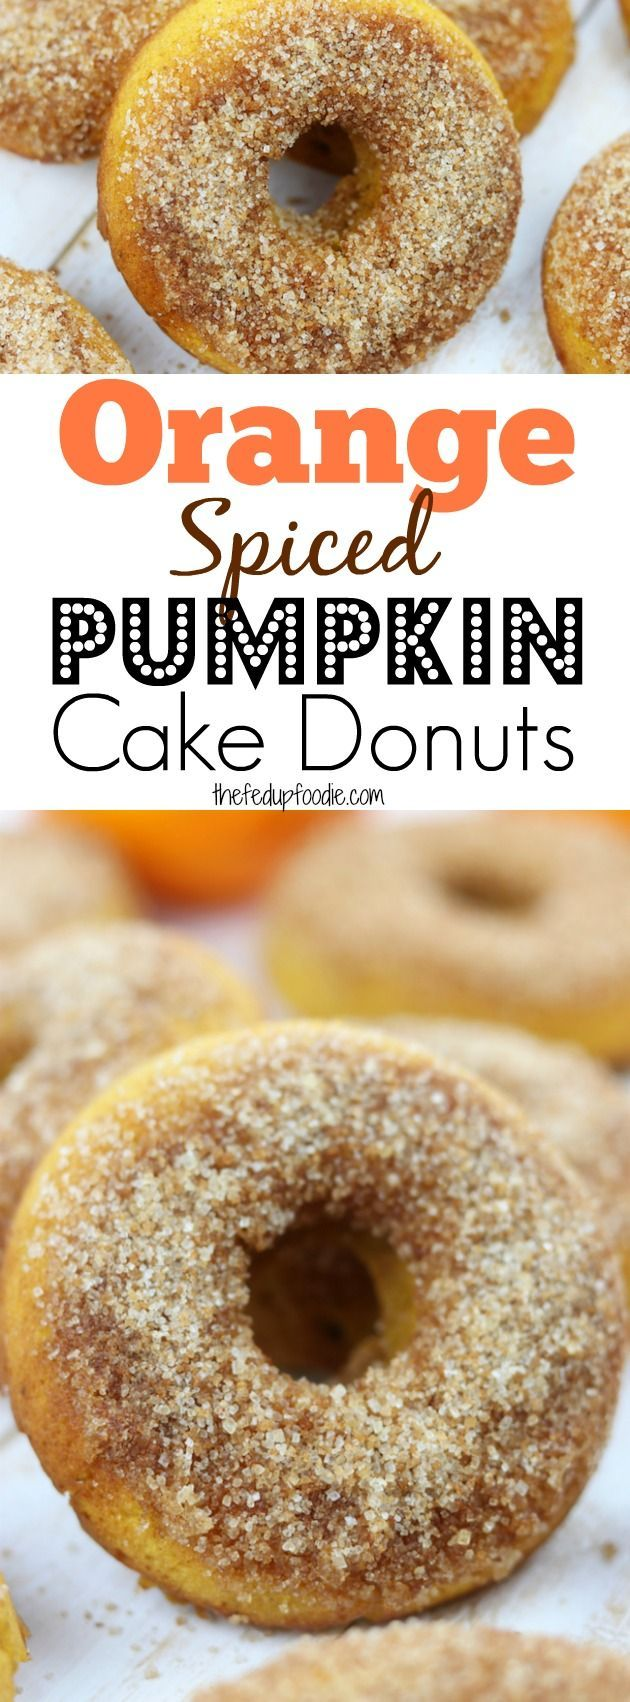 Orange Spiced Pumpkin Cake Donuts is an easy, family favorite recipe that will delight your taste buds. Hints of refreshing orange are nestled in fluffy pumpkin cake and top with cinnamon sugar. Made with healthy ingredients, this is one of the best baked donuts ever! https://www.thefedupfoodie.com